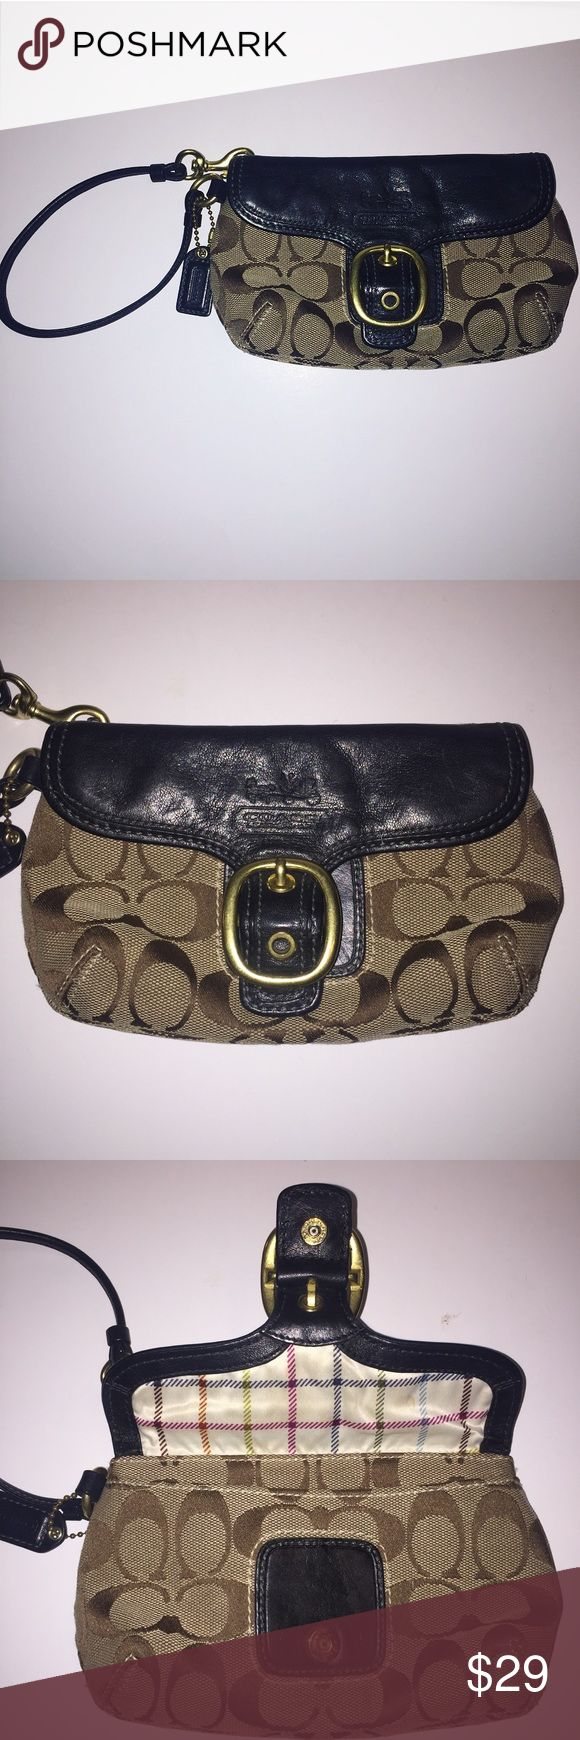 Coach Wristlet Clutch Black Leather Signature C's Coach Women's Wristlet Black leather flap and strap Signature Coach Brown C's  Front Pocket Larger Compartment with zipper Coach Bags Clutches & Wristlets